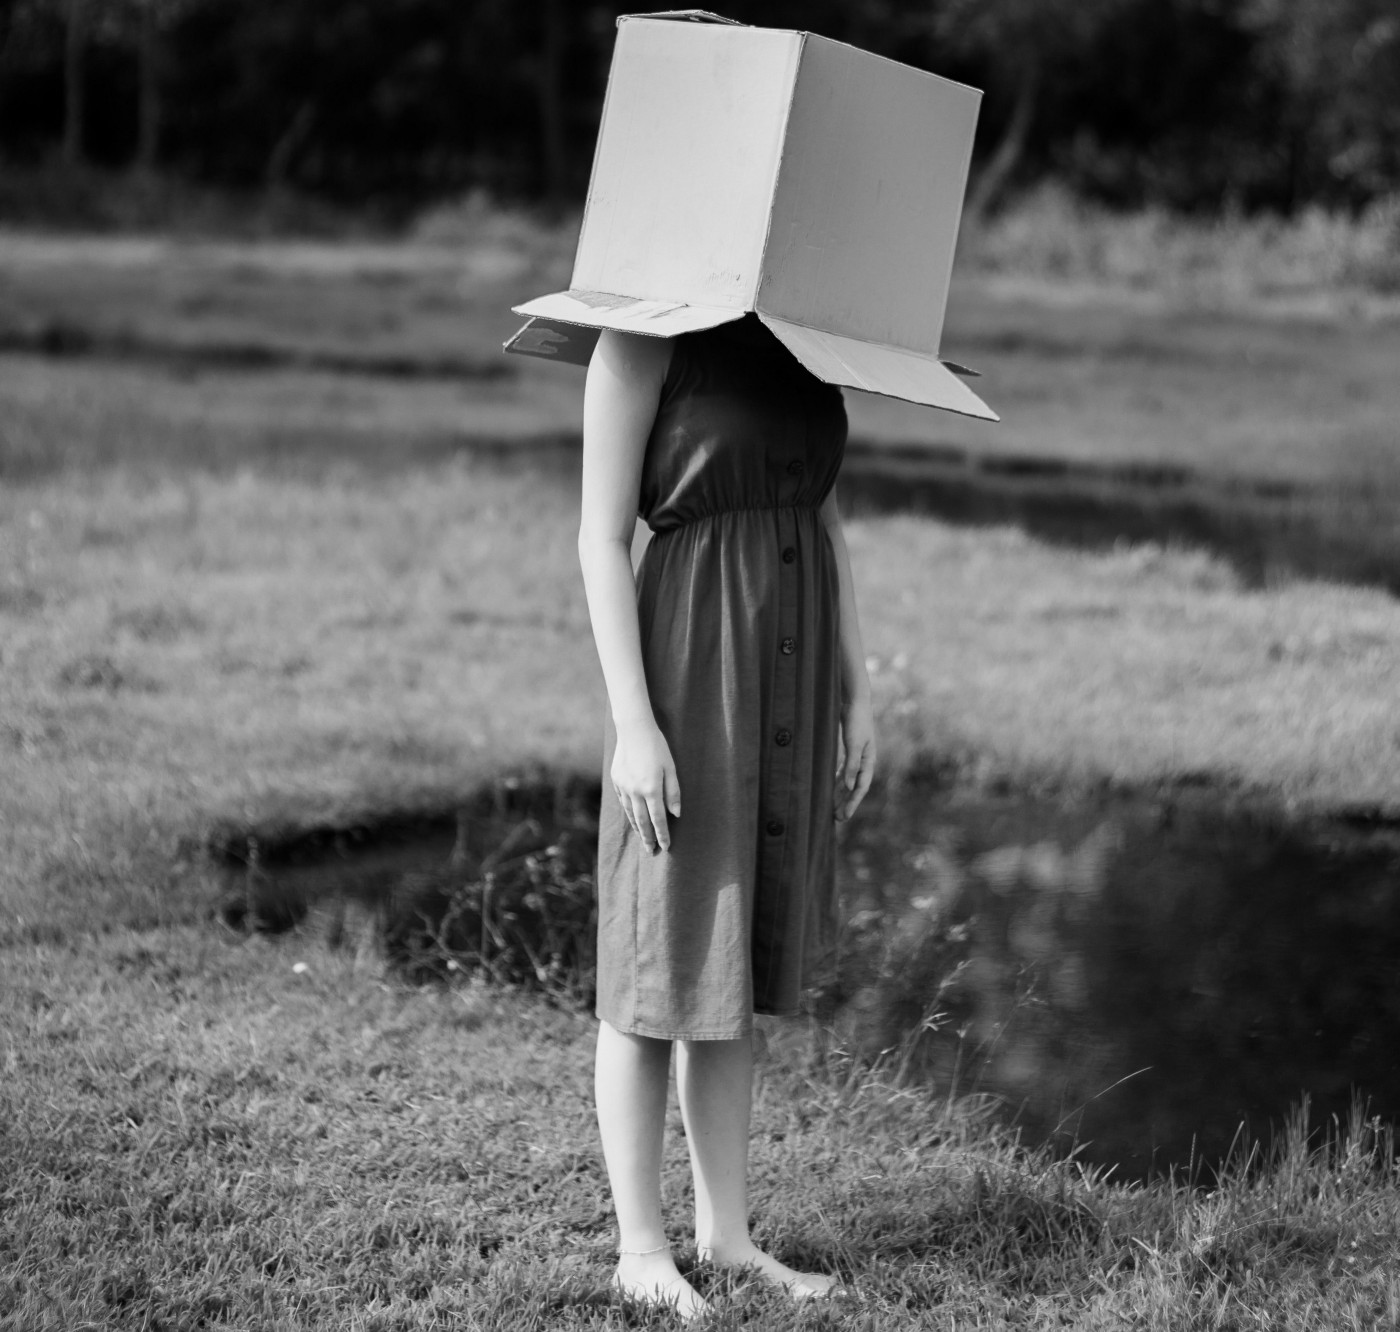 A woman with a box on her head that shows worry, anxiety, and bad habits